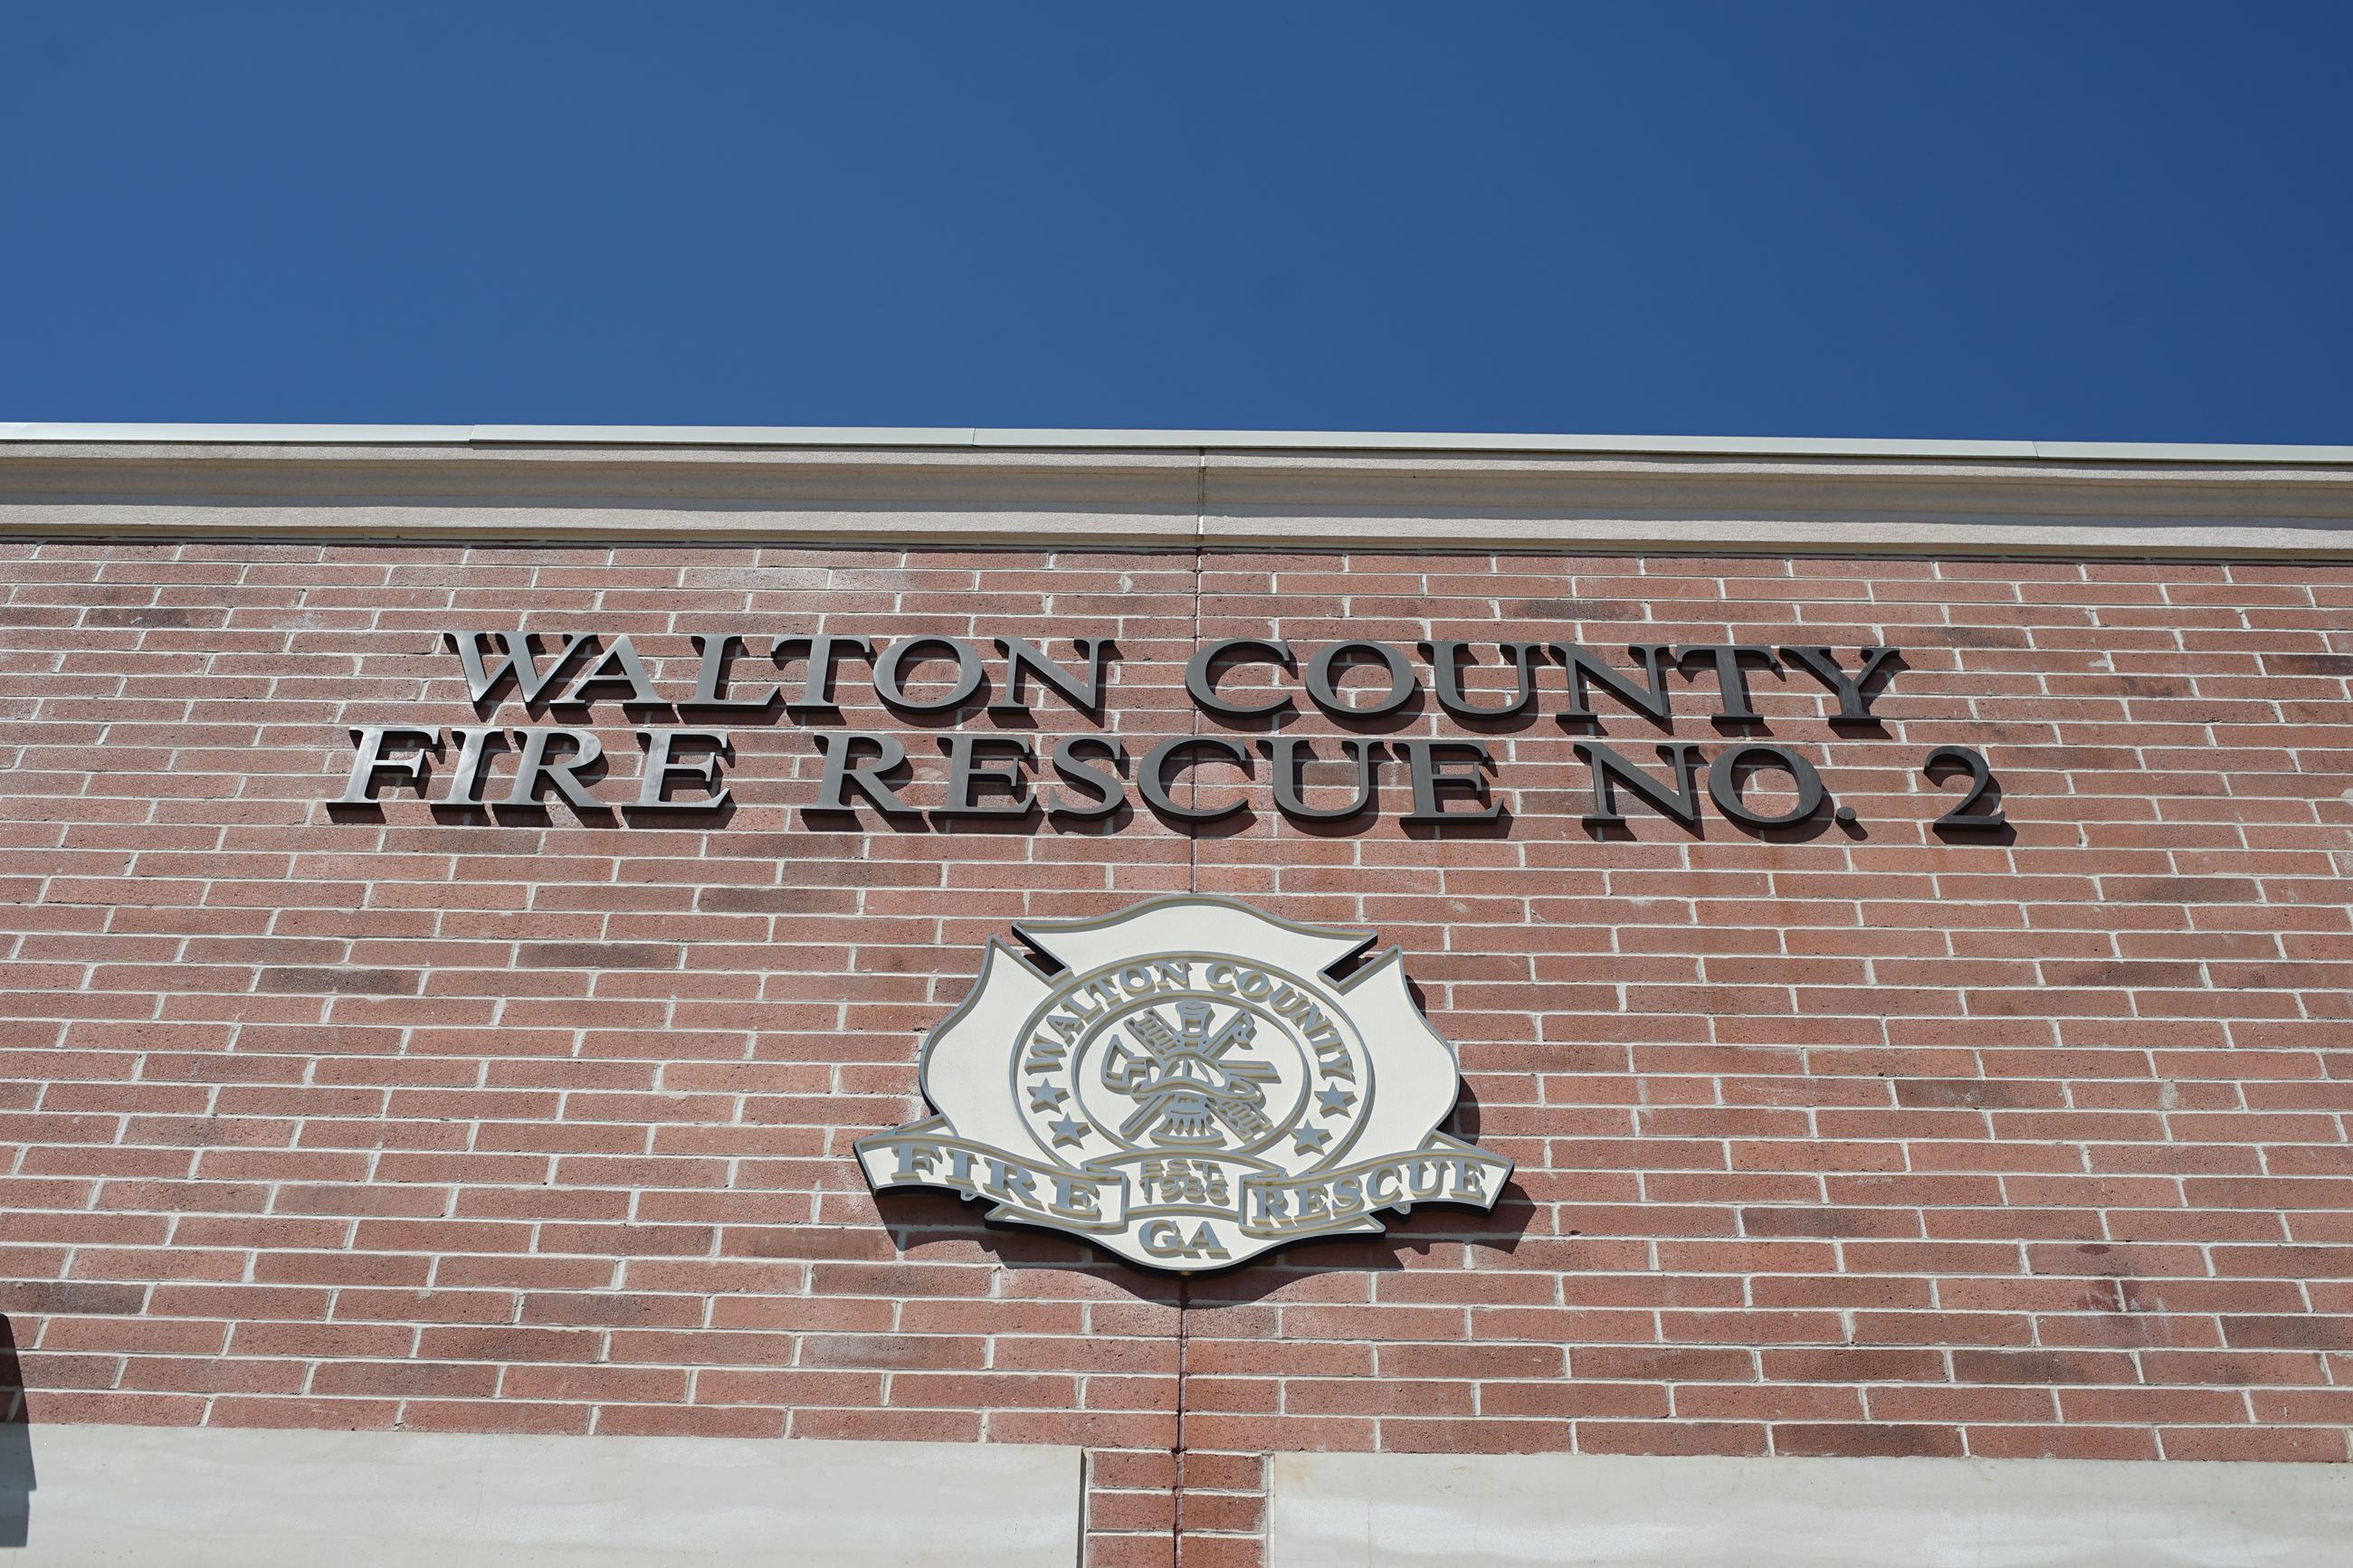 Walton County Fire House Number 2 close up of the emblem